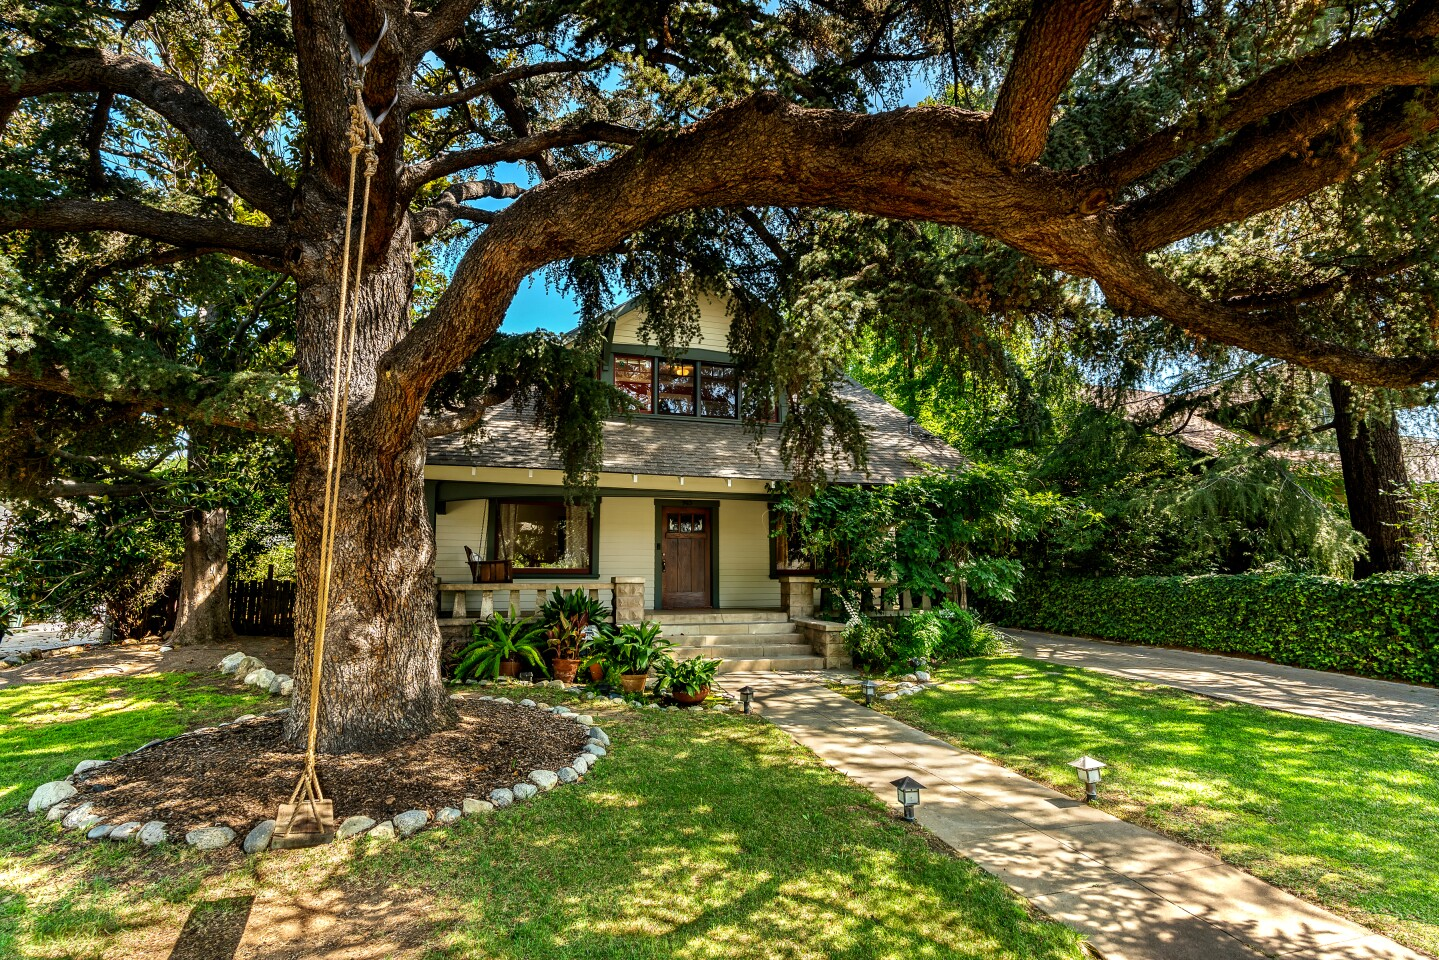 The Craftsman-style home in Pasadena's Historic Highlands area was assembled from a kit in 1909.